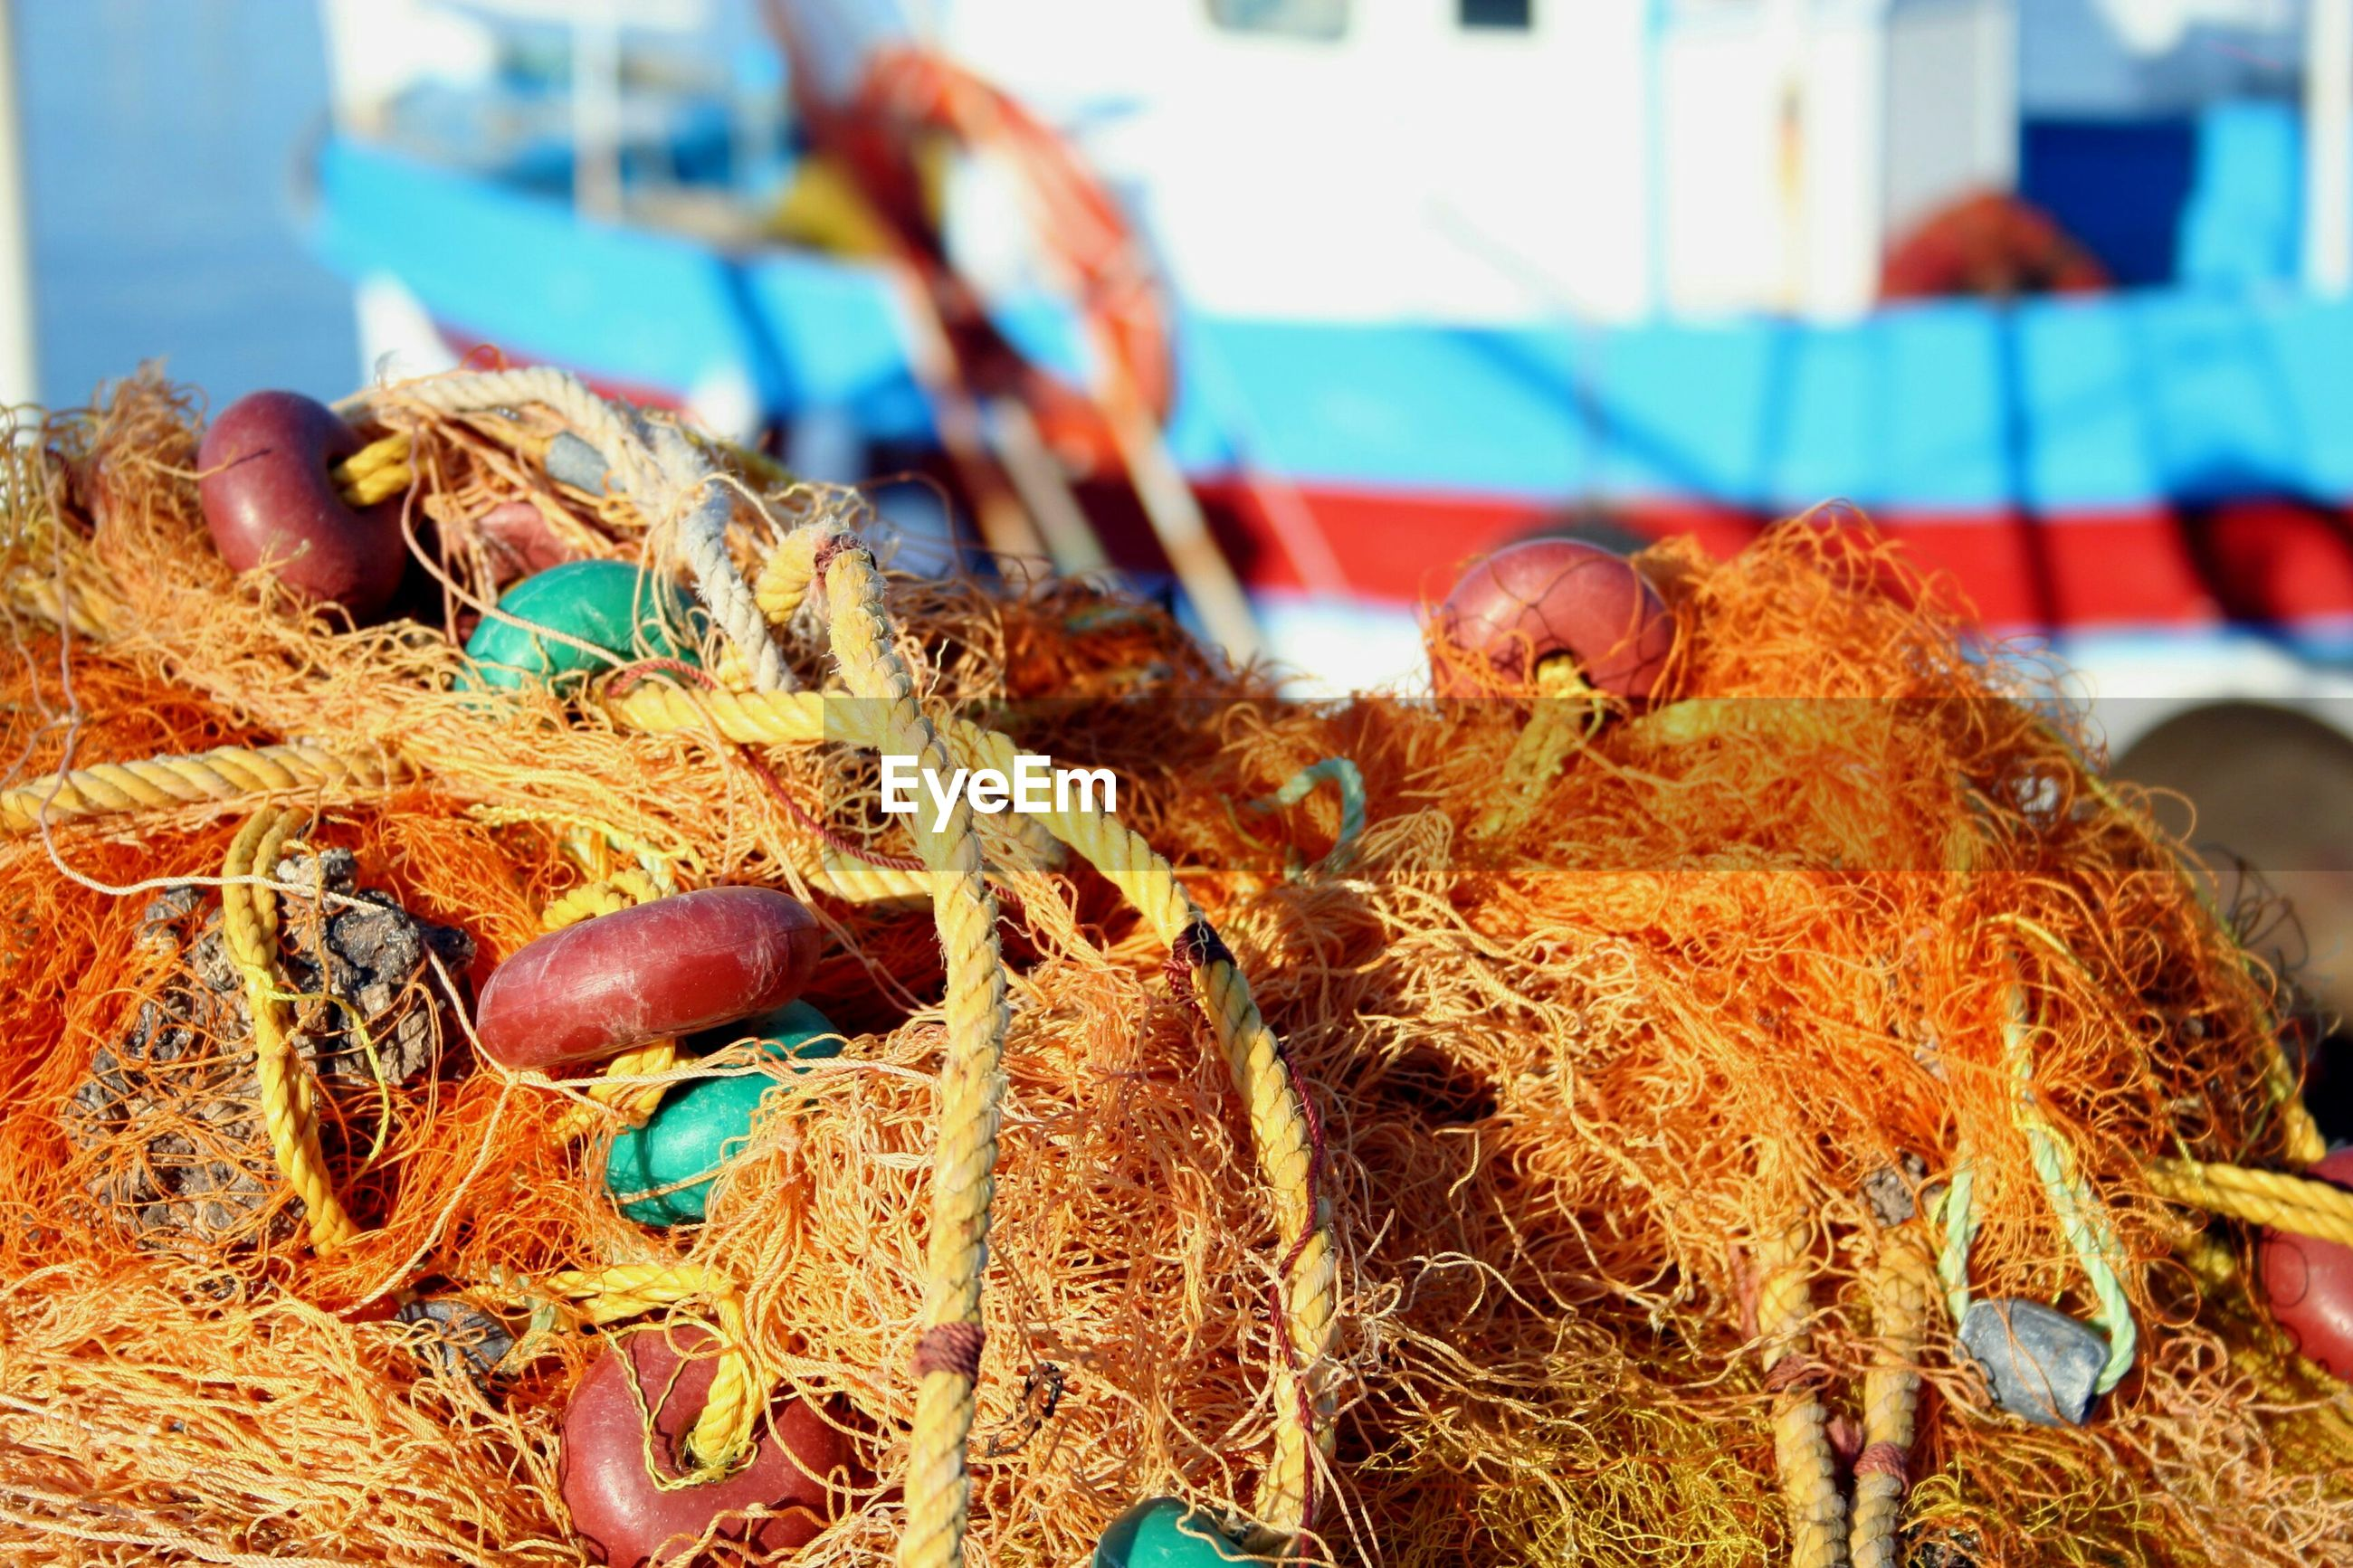 focus on foreground, close-up, food and drink, food, fishing industry, still life, day, basket, rope, agriculture, abundance, outdoors, no people, variation, heap, retail, stack, for sale, large group of objects, healthy eating